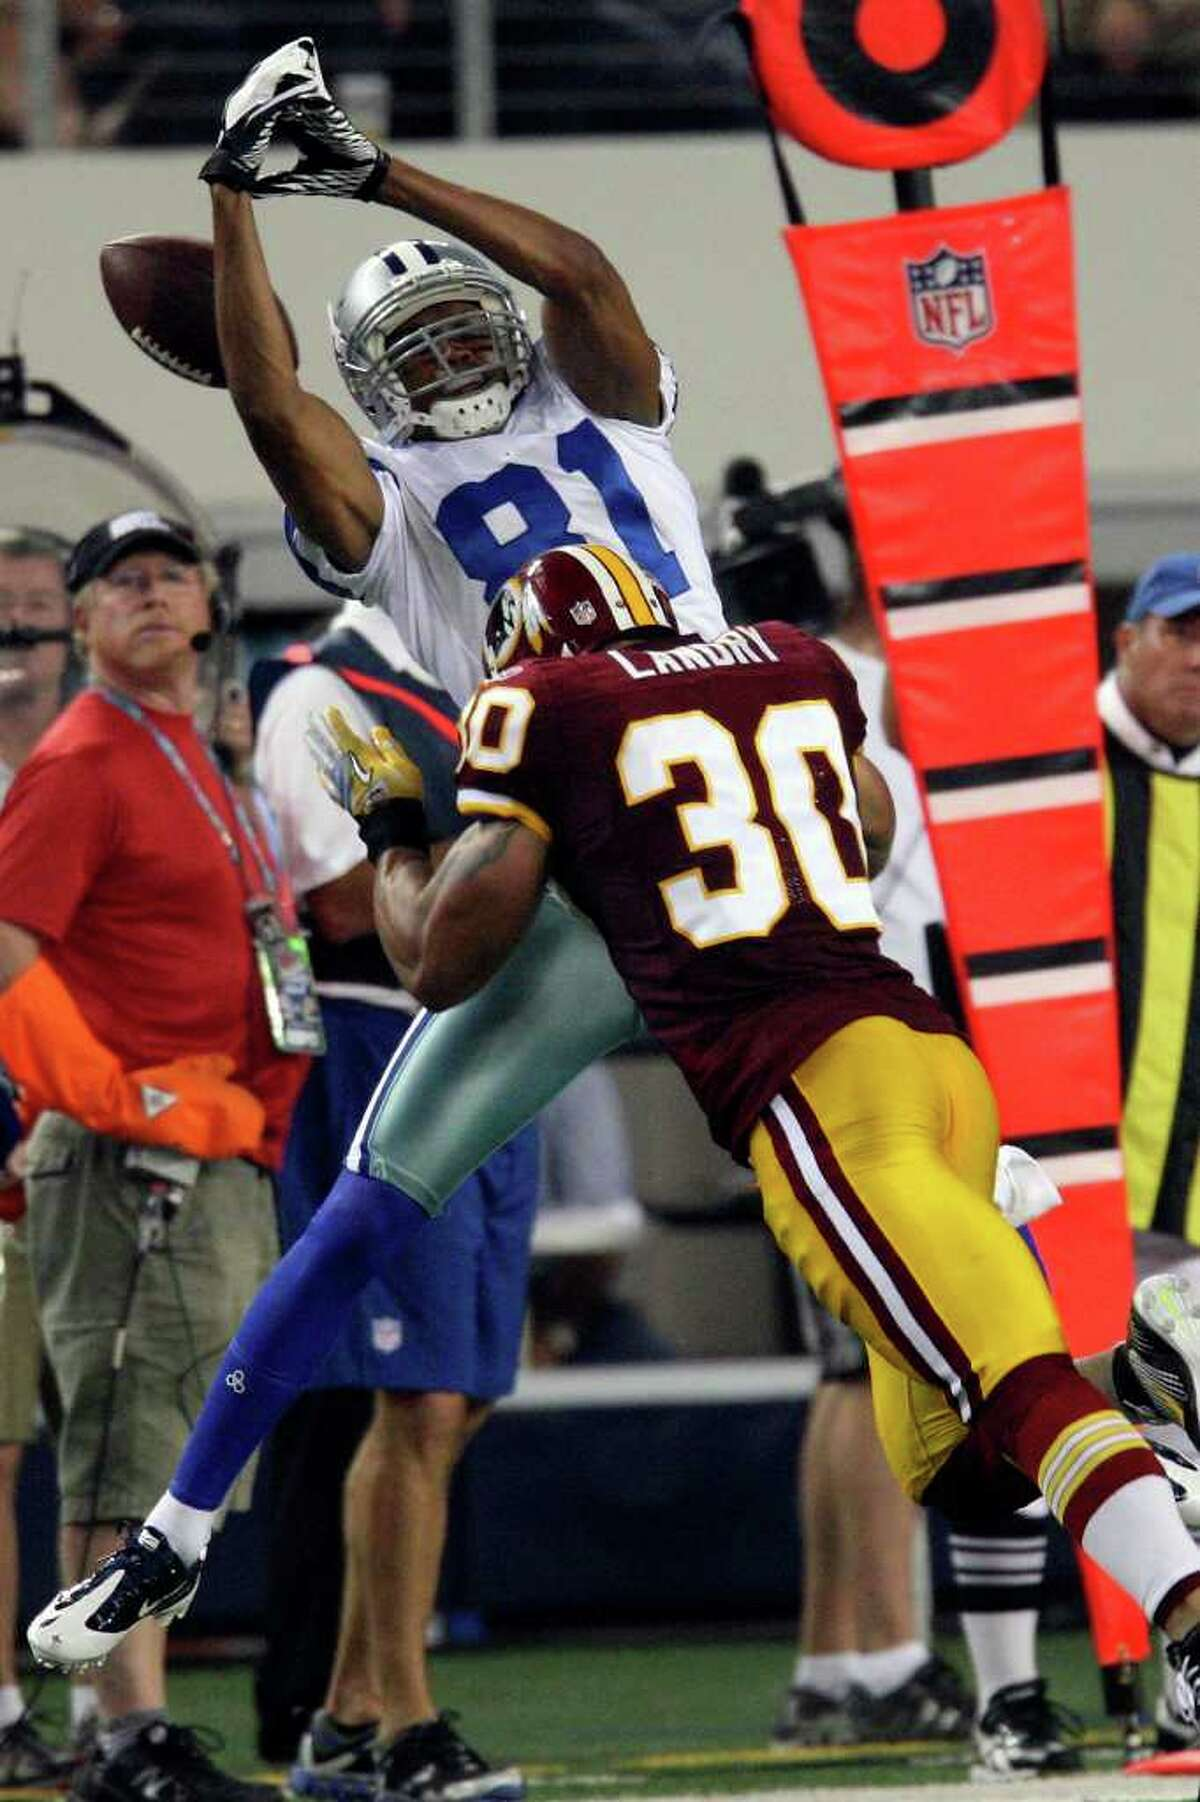 Cowboys wide receiver Laurent Robinson can't hold on to a pass from quarterback Tony Romo as Washington Redskins safety LaRon Landry pressures Robinson at Cowboys Stadium in Arlington on Monday, Sept. 26, 2011.